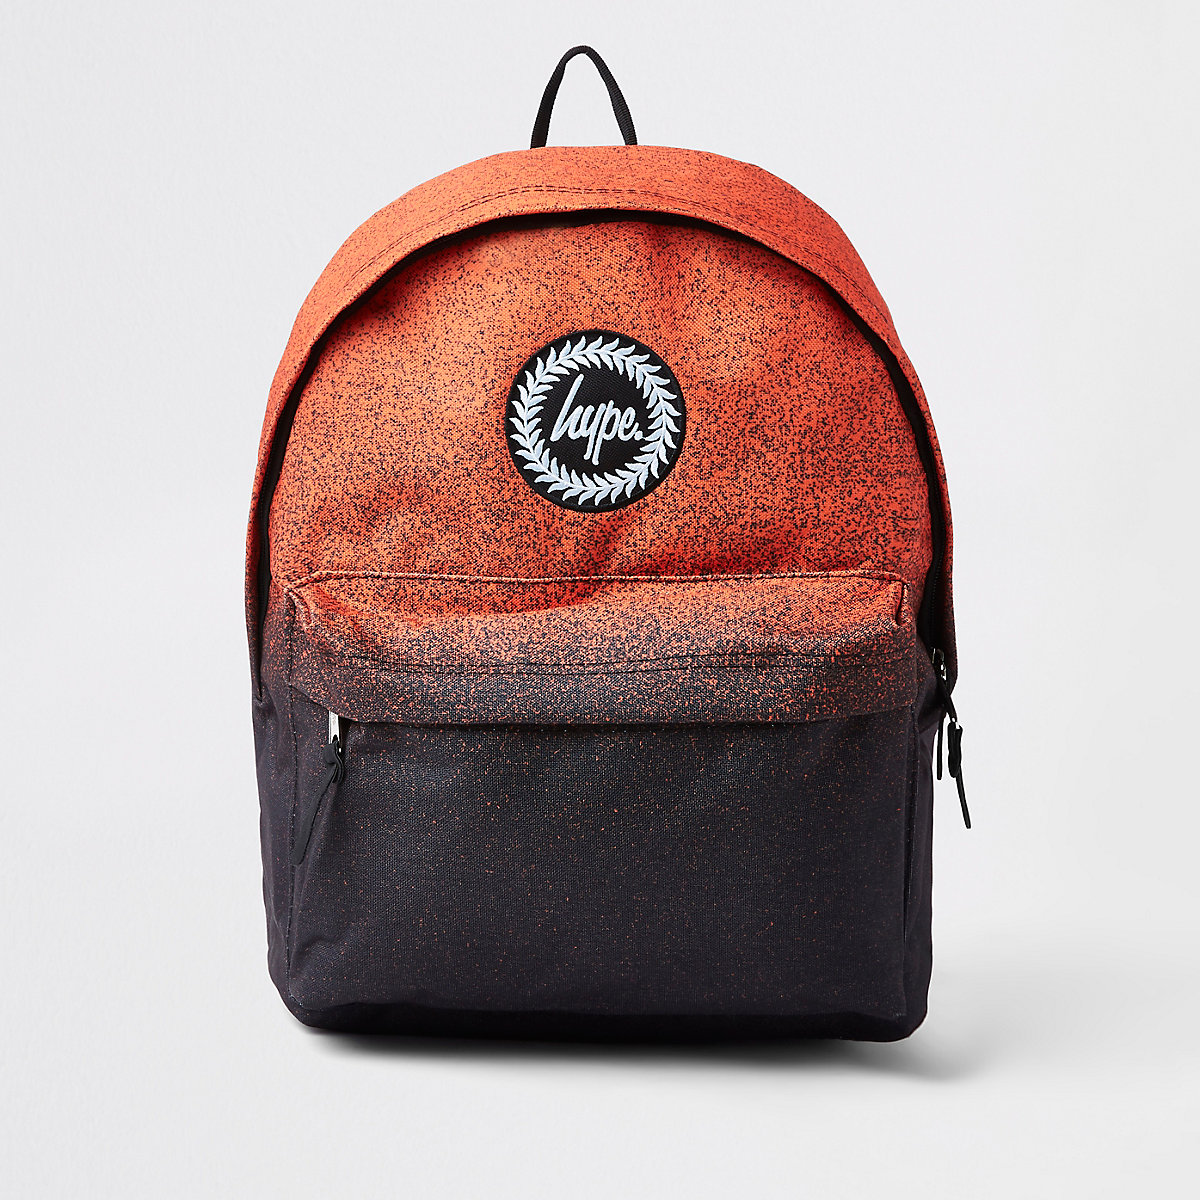 958fea0d777a Boys Hype black orange speckled backpack - Bags   Wallets - Accessories -  boys